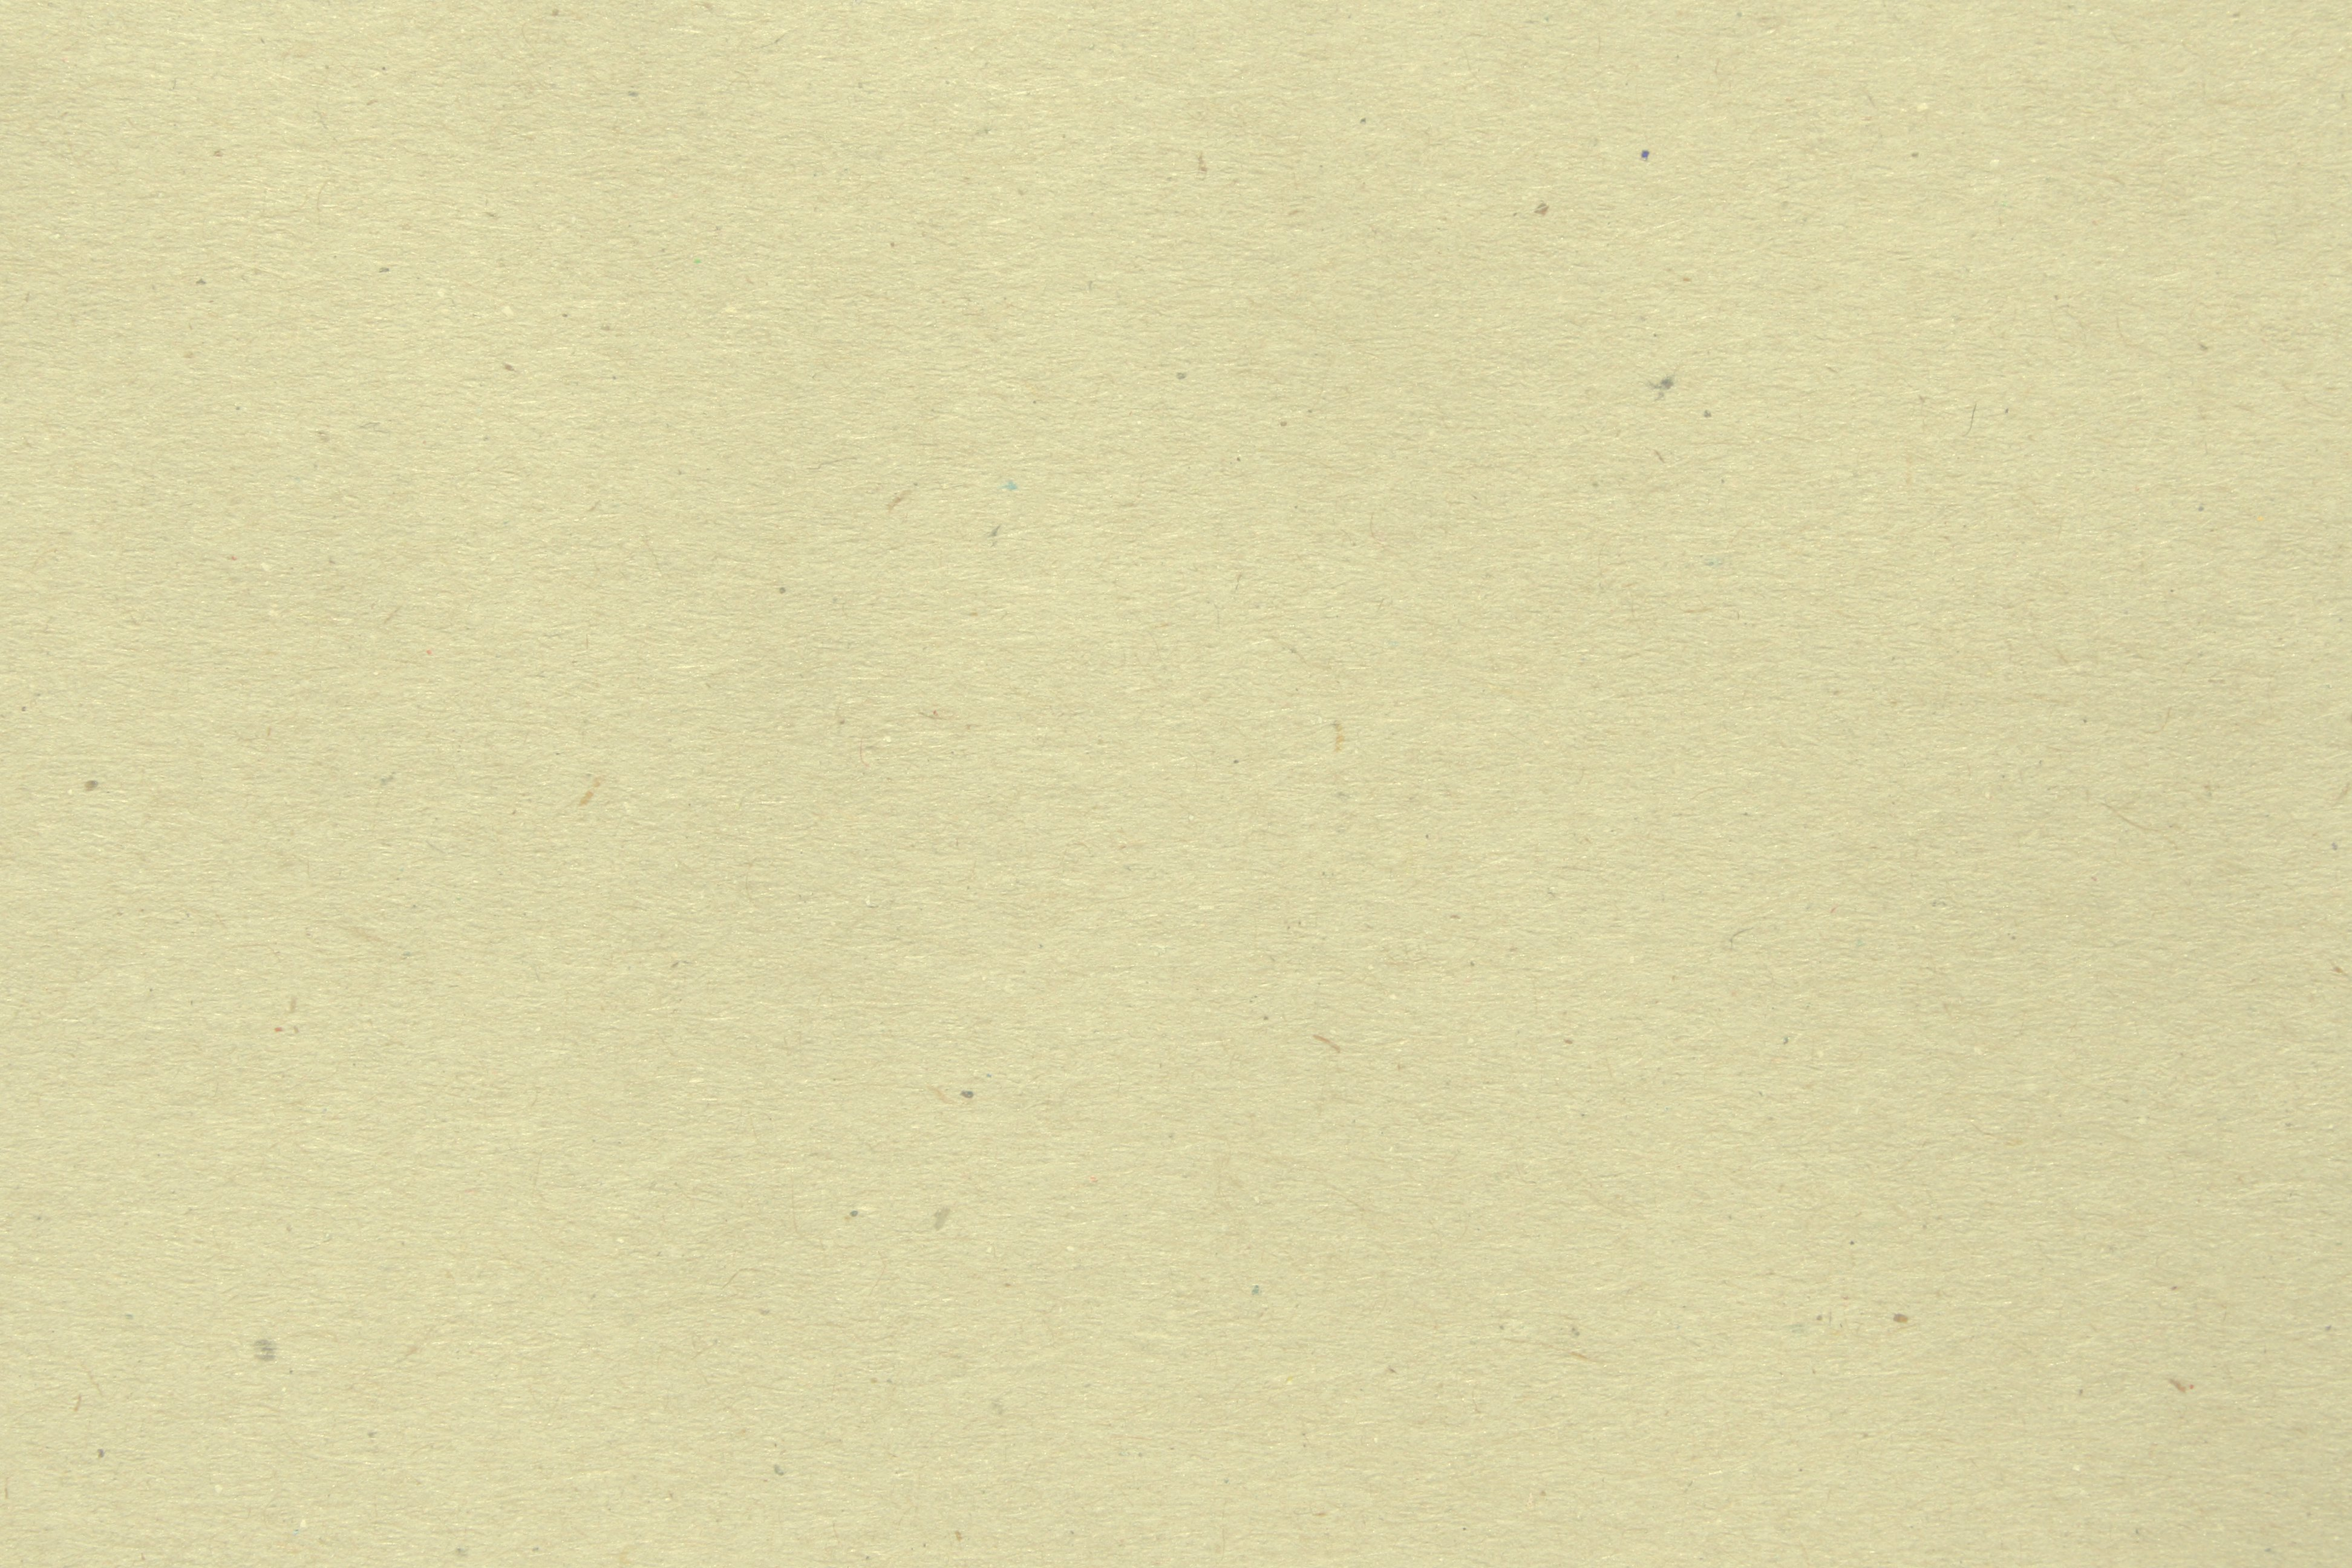 Ivory Off White Paper Texture with Flecks   High Resolution Photo 3888x2592